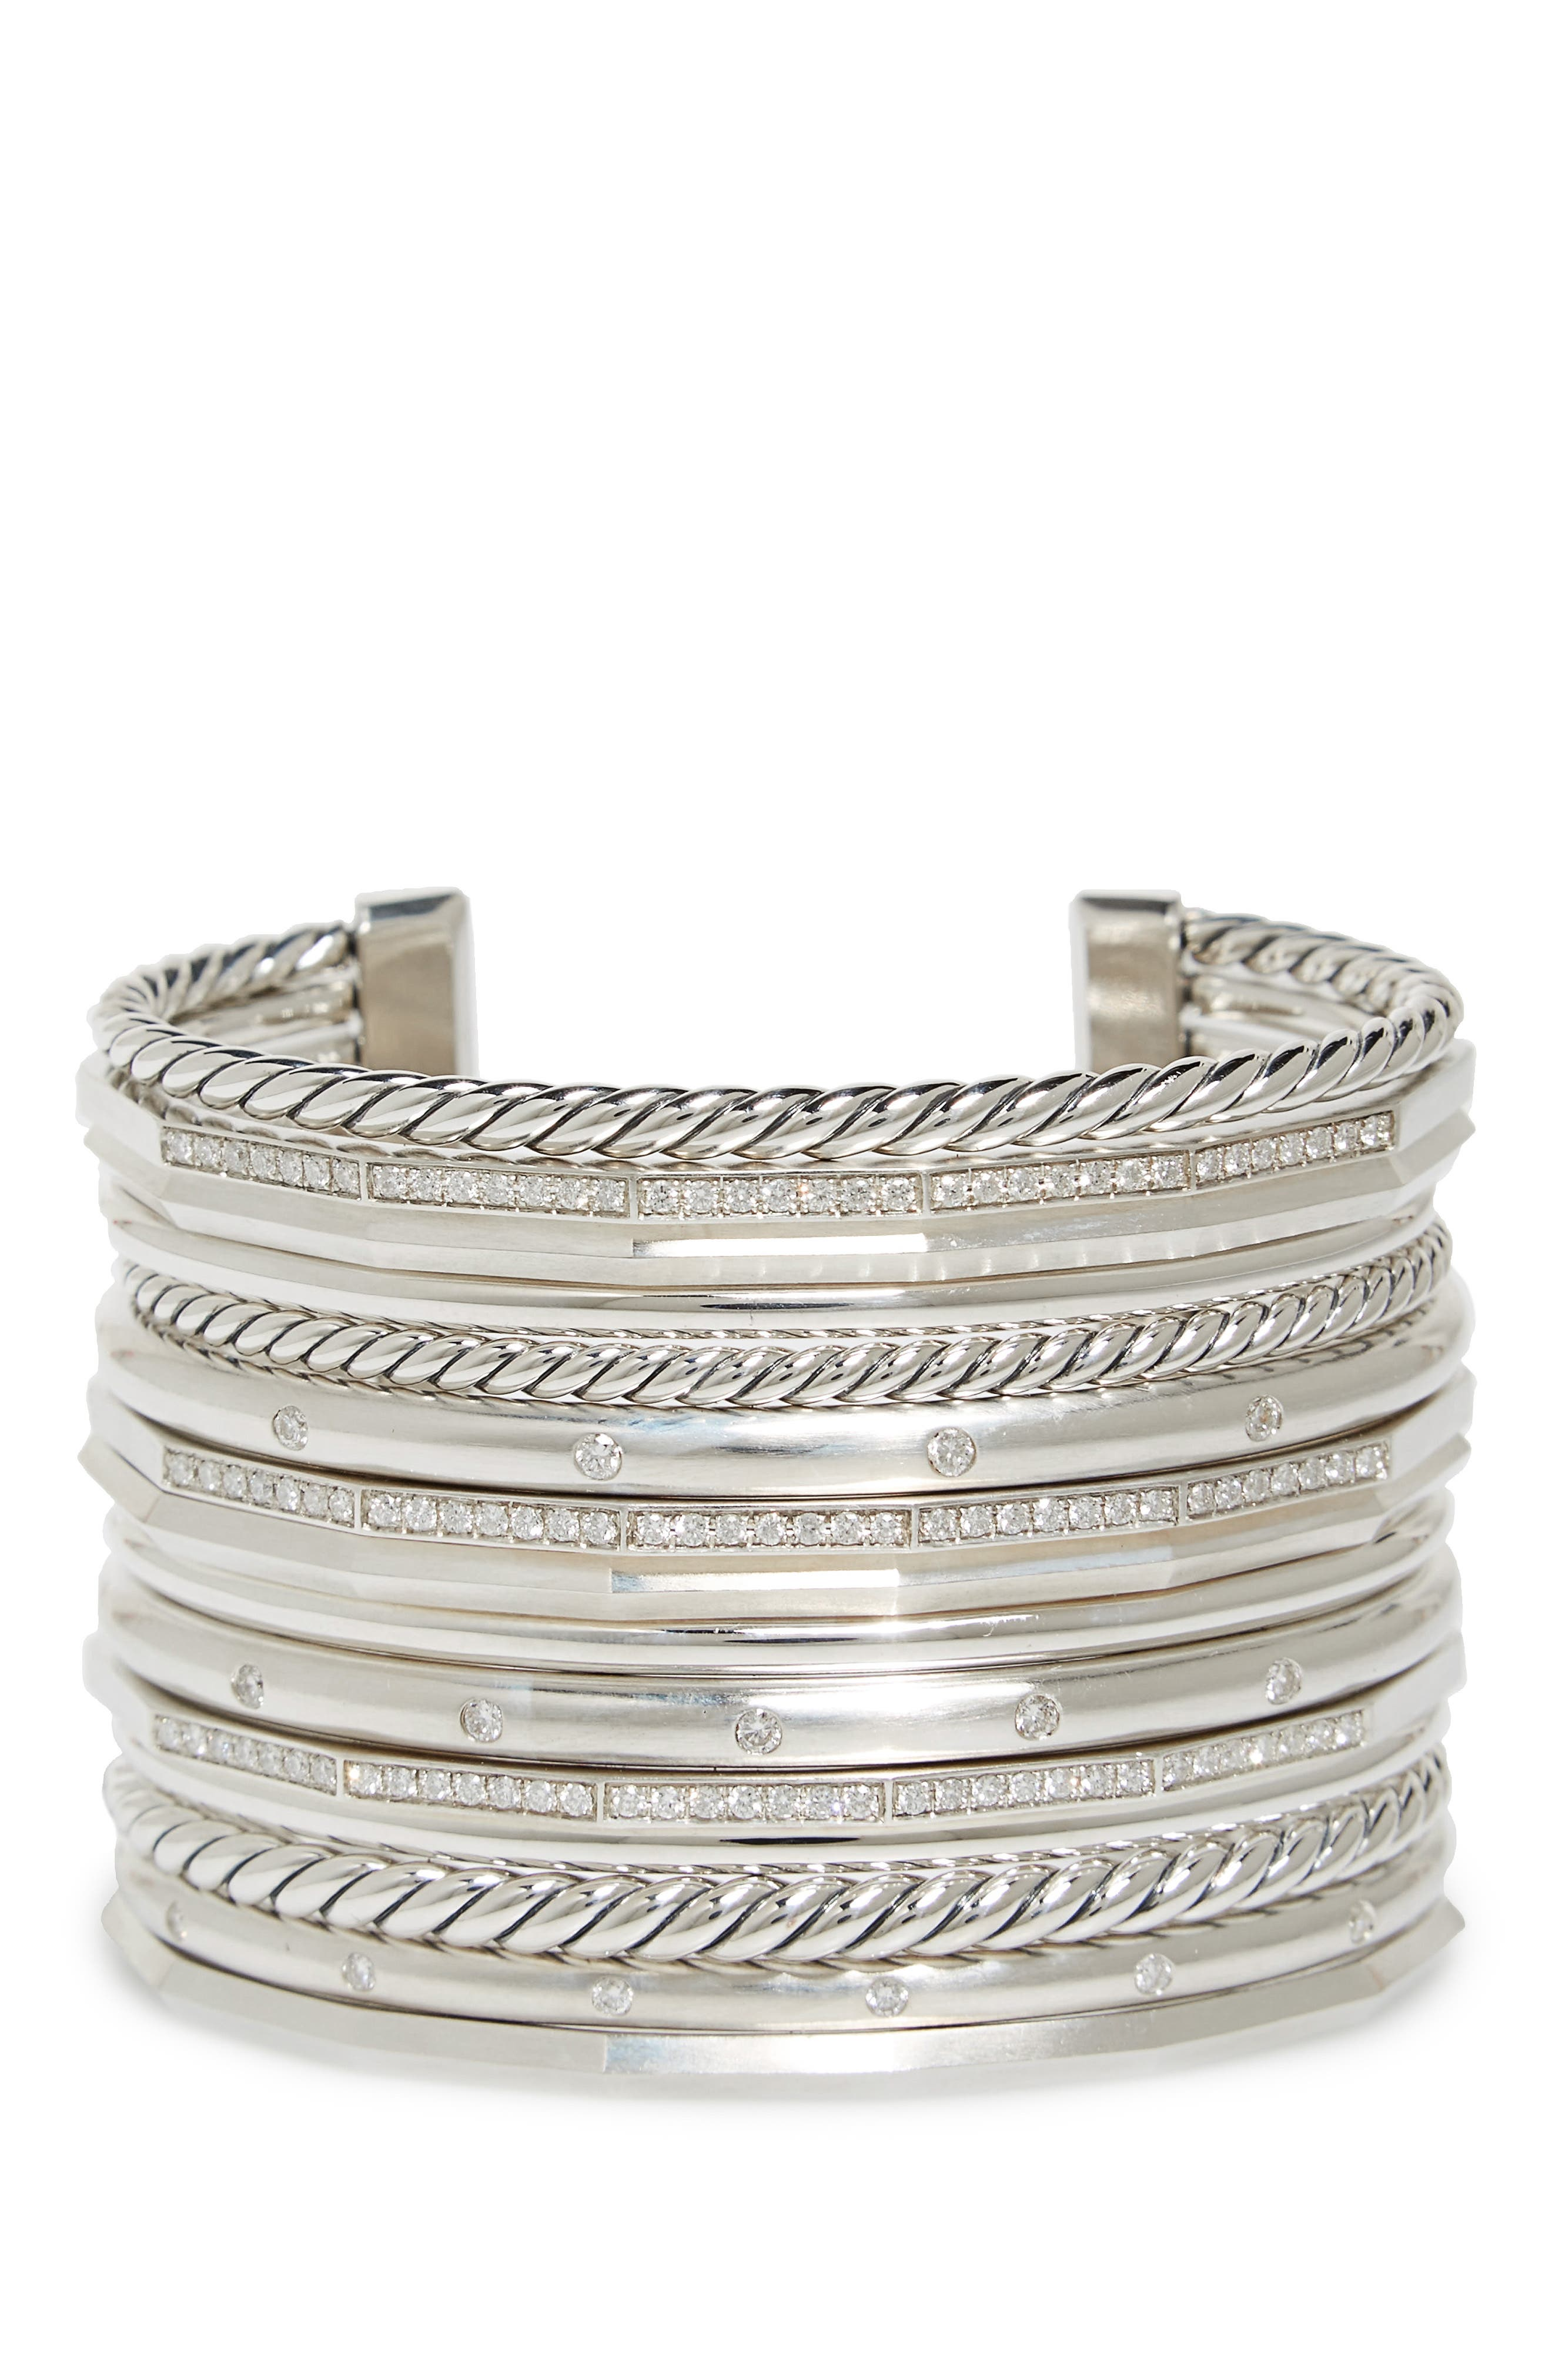 Stax Wide Cuff Bracelet with Diamonds, 54mm,                         Main,                         color, SILVER